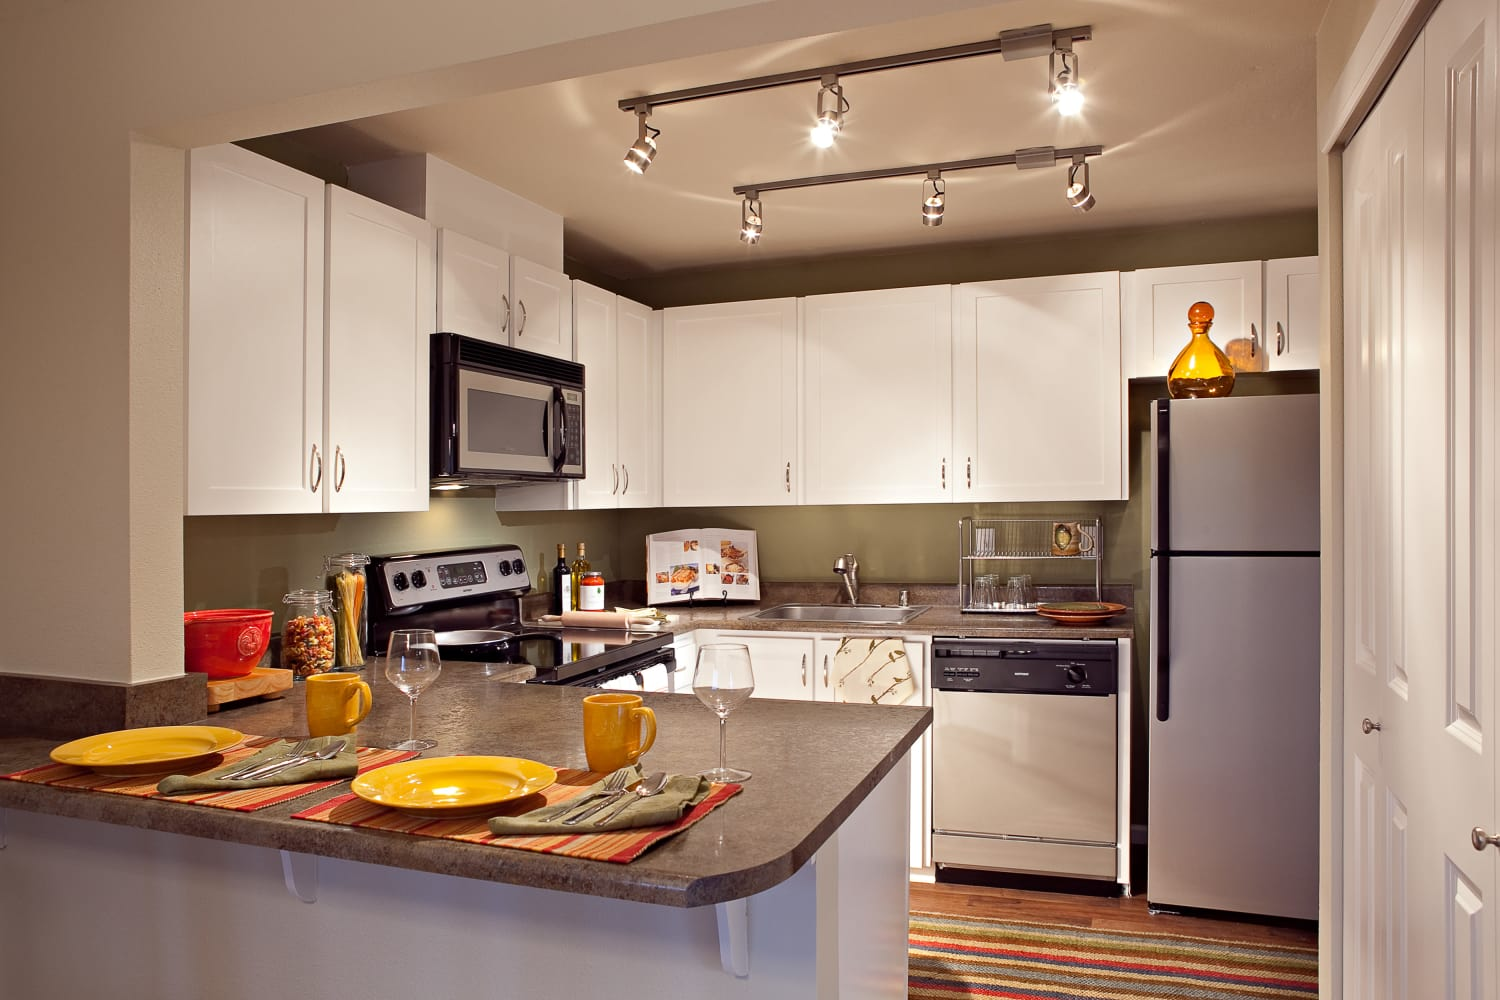 Open kitchen at Edgewood Park Apartments in Bellevue, Washington